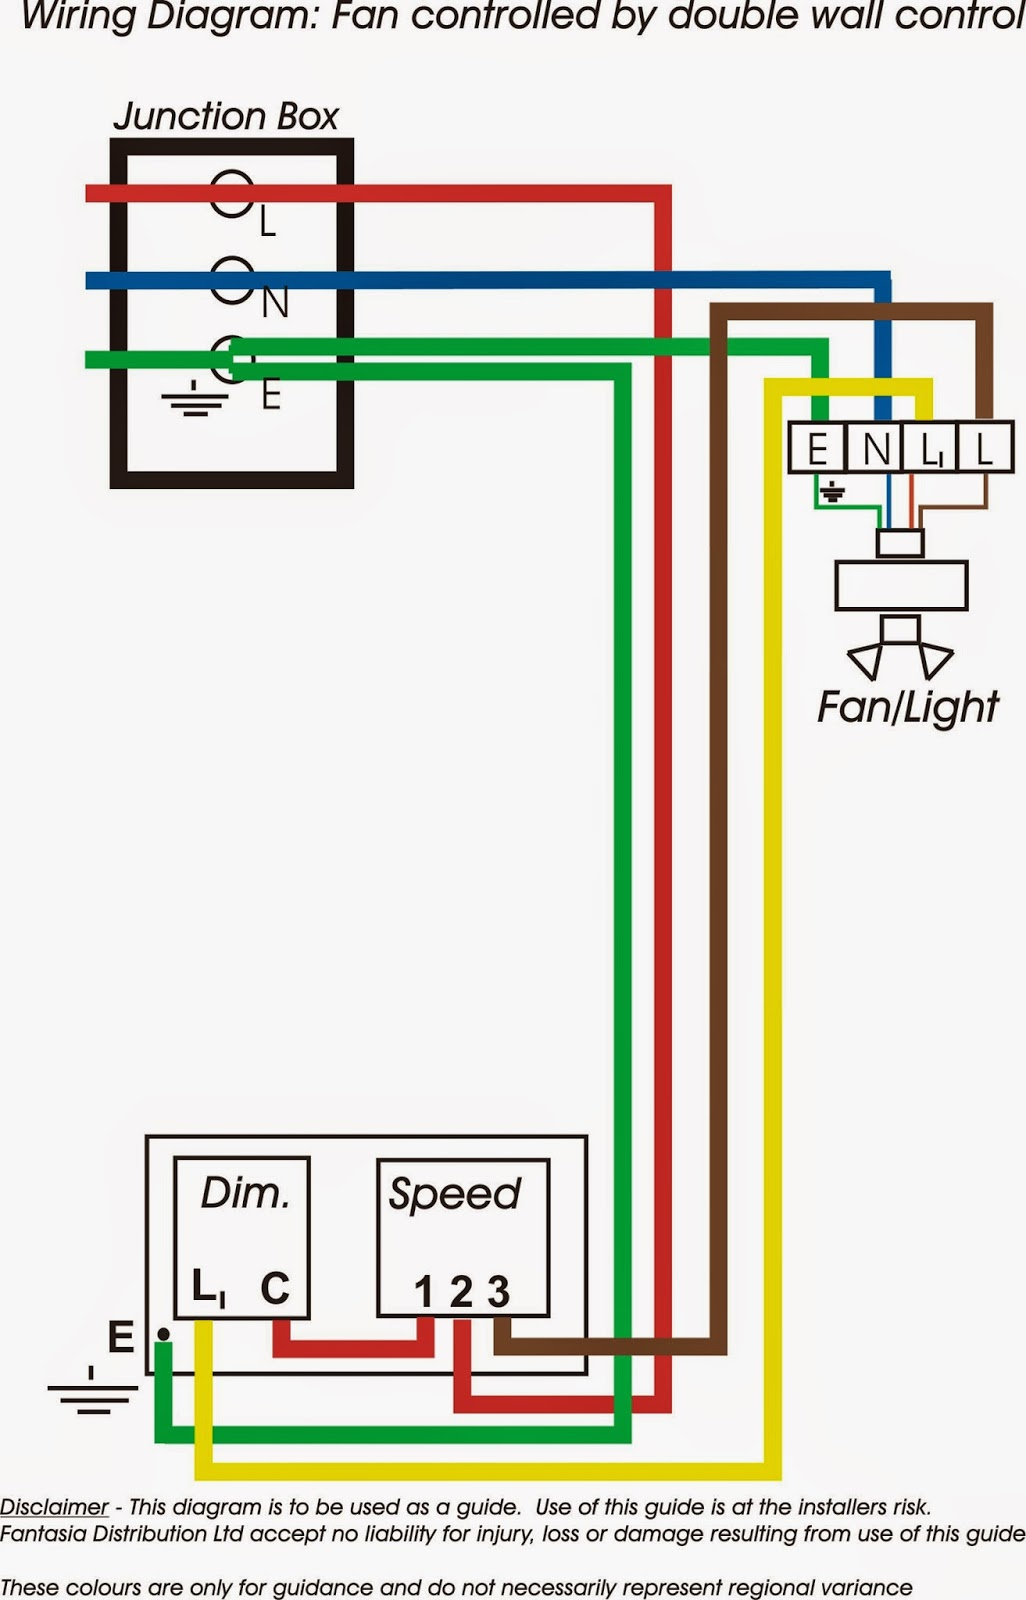 Wiring Diagram Wall Control on Electrical Drawings Wiring Diagrams